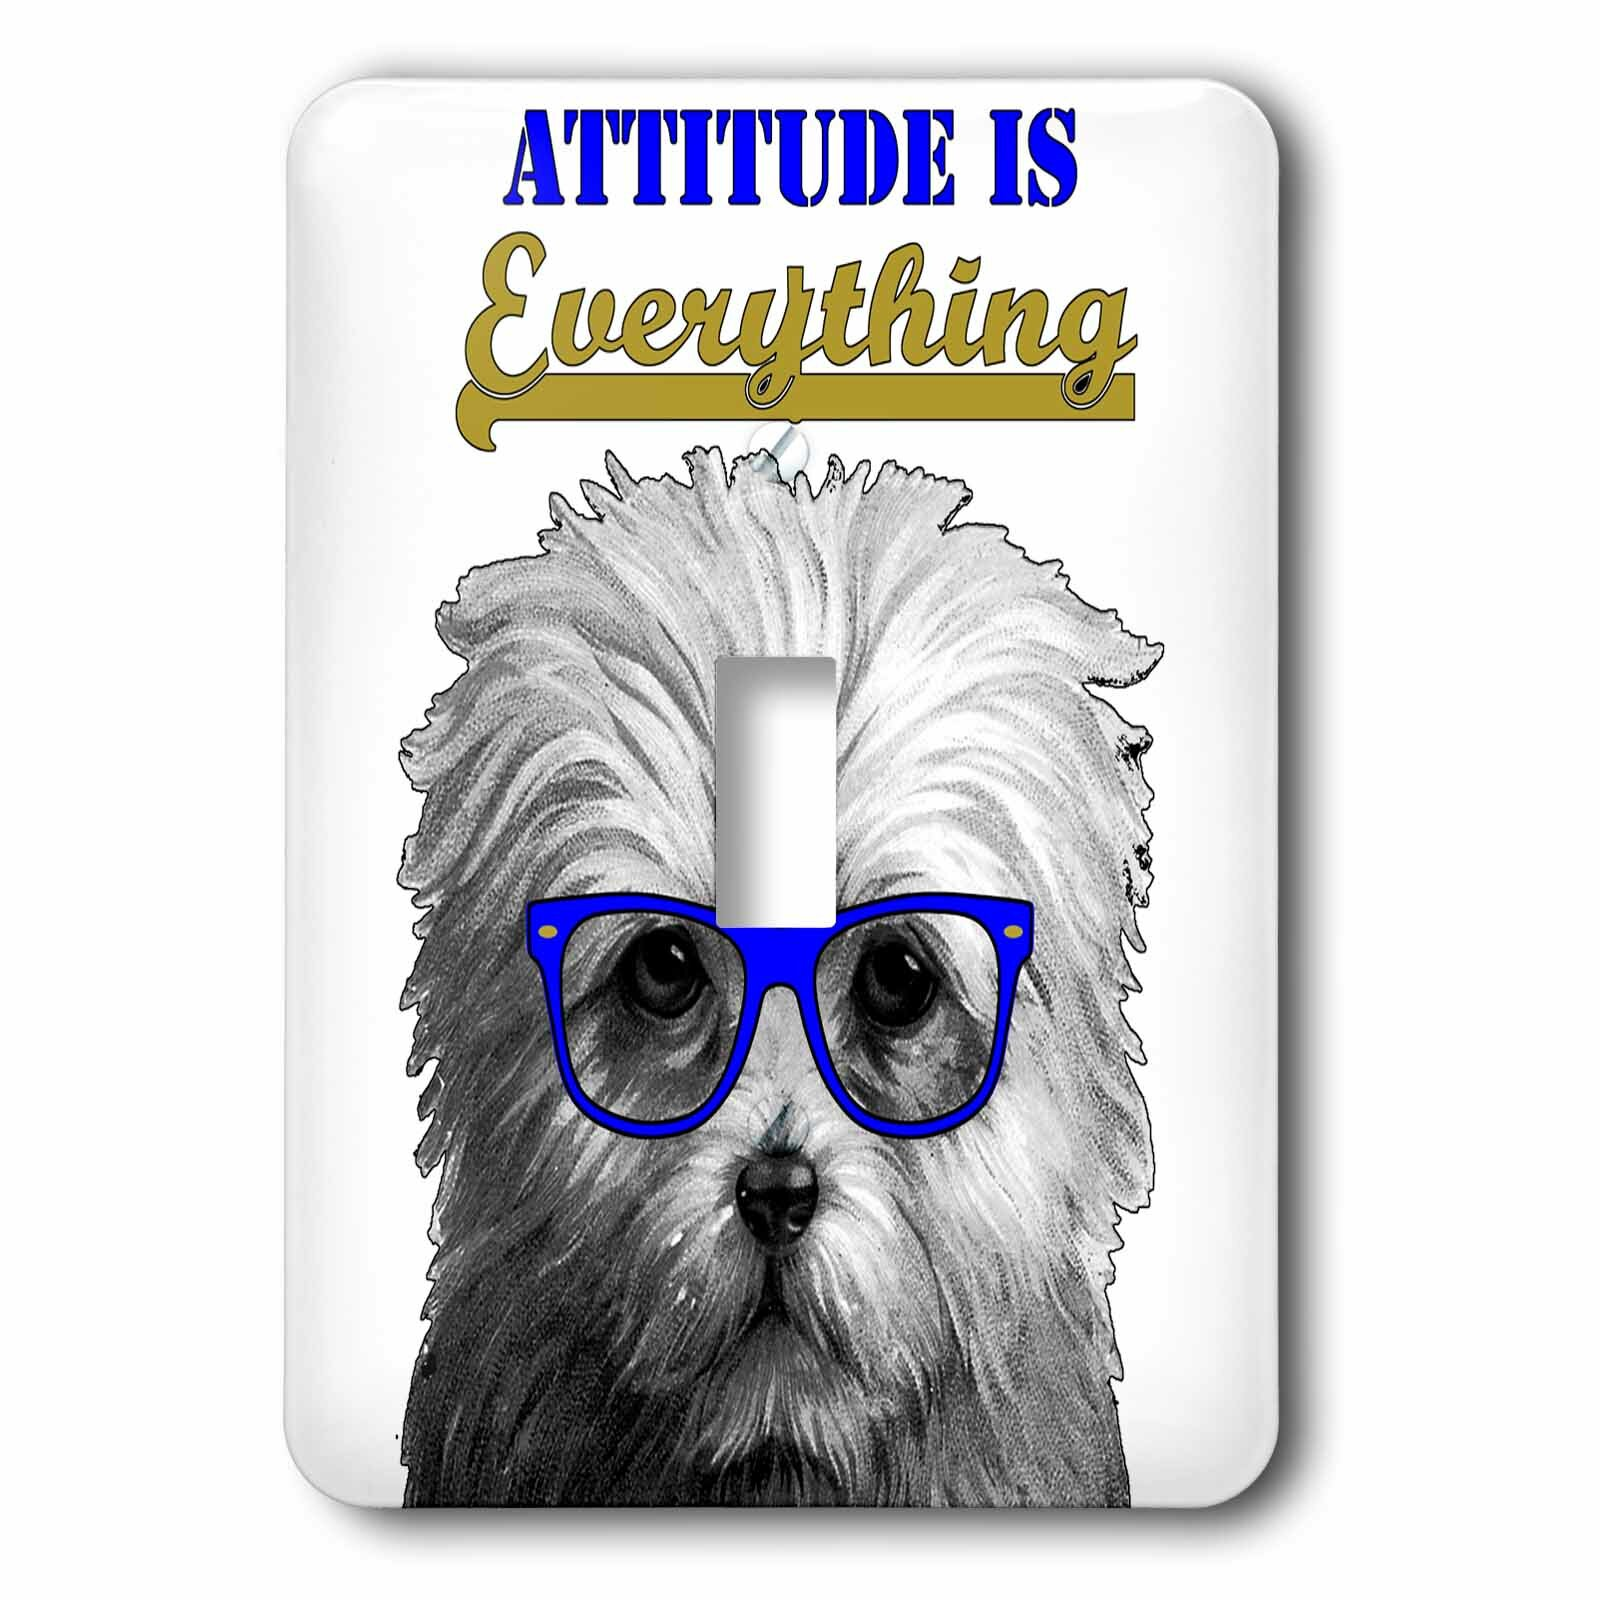 3drose Attitude Is Everything 1 Gang Toggle Light Switch Wall Plate Wayfair